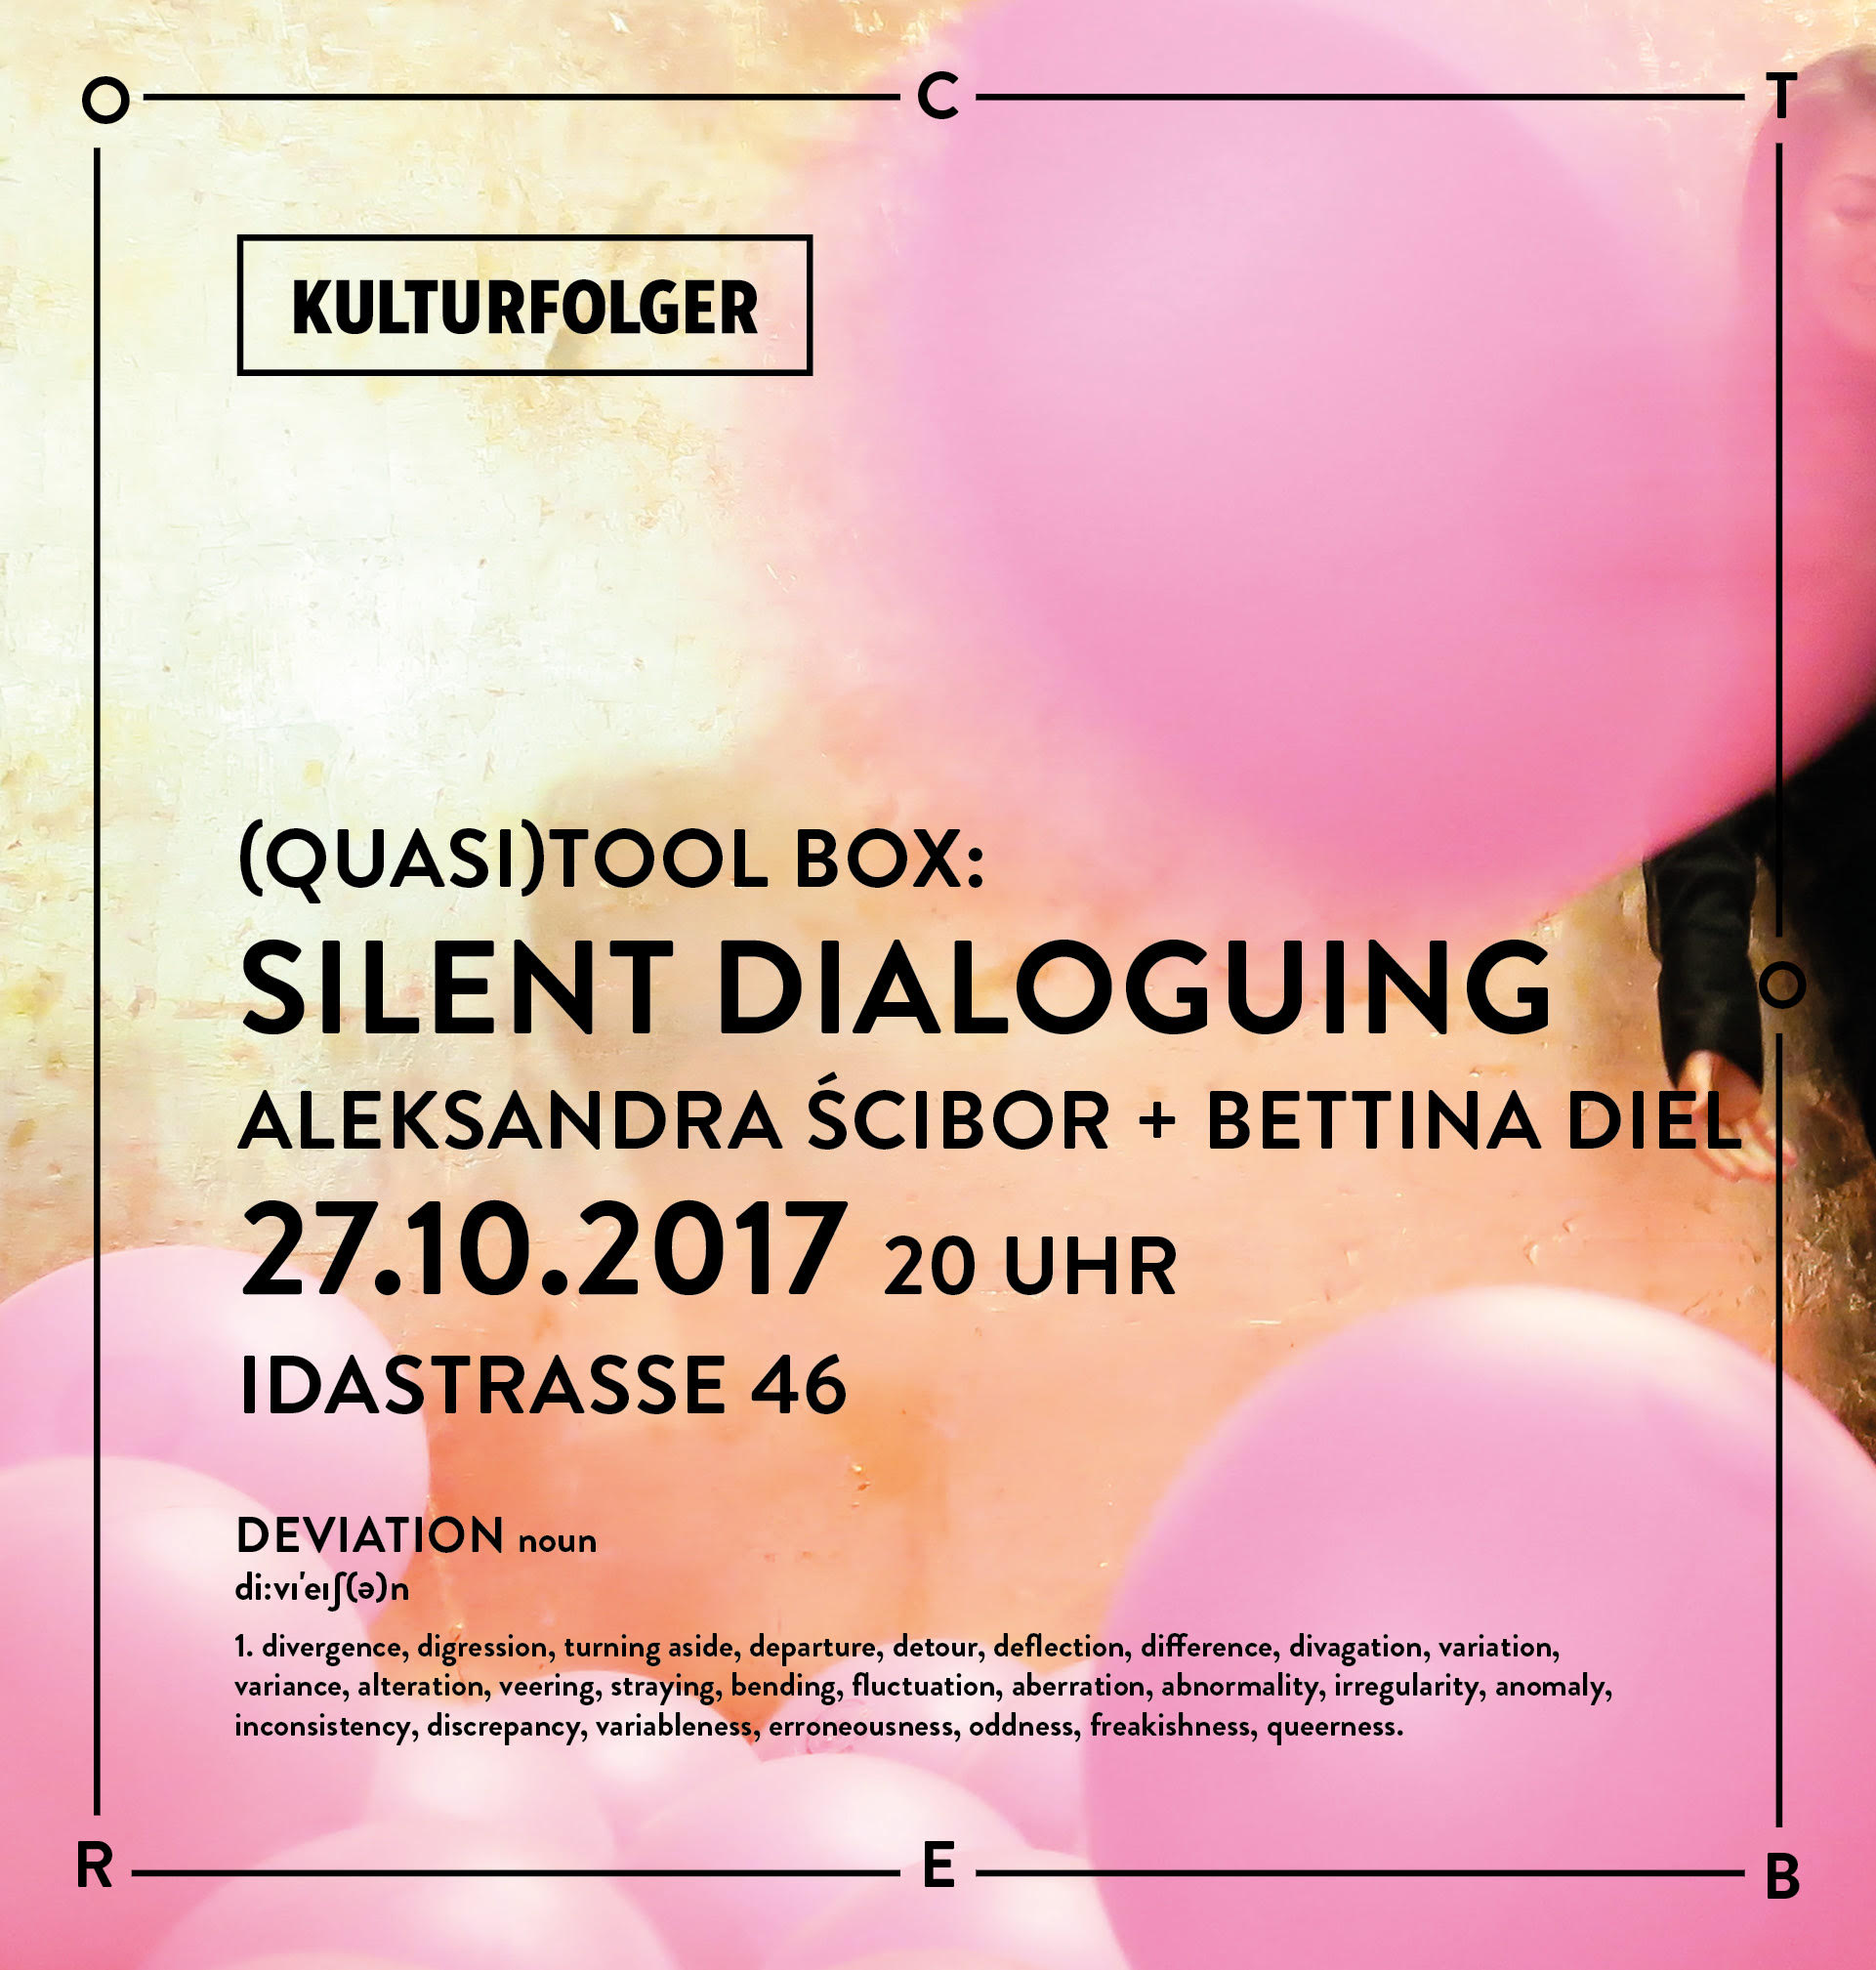 (Quasi)Tool Box: Silent Dialoguing  Aleksandra Ścibor + Bettina Diel  27.10.2017, 20 Uhr   --- (Quasi)Tool Box: Silent Dialoguing  Join us for this special event and experience yourself in a dialouge, immersed in pink water balls, with our artwork of the month by Bettina Diel.  Come explore the meditative and playful potentiality of this quasi tool!  The workshop-like situation is organised into a map, yet its territory is entirely yours.  Enjoy!   Facilitated by: Aleksandra Ścibor and Bettina Diel  Aleksandra Ścibor - embodiment artist, dancer, choreographer. Currently working with the students of the BA Theater at the Zurich University of the Arts.